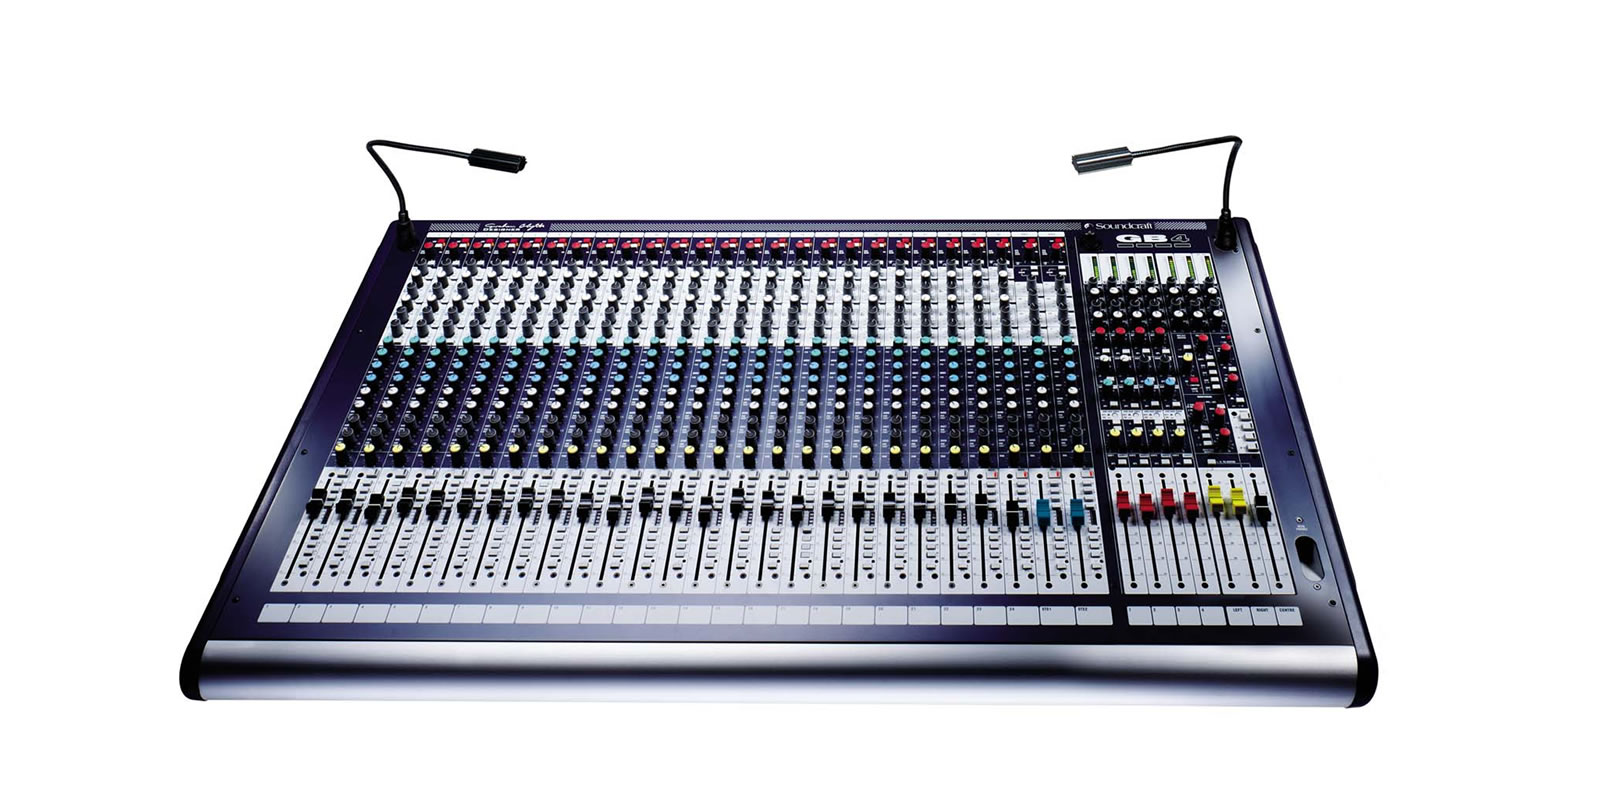 Gb4 Soundcraft Professional Audio Mixers Low Cost Mic Mixer Gb30 Preamps And Eq